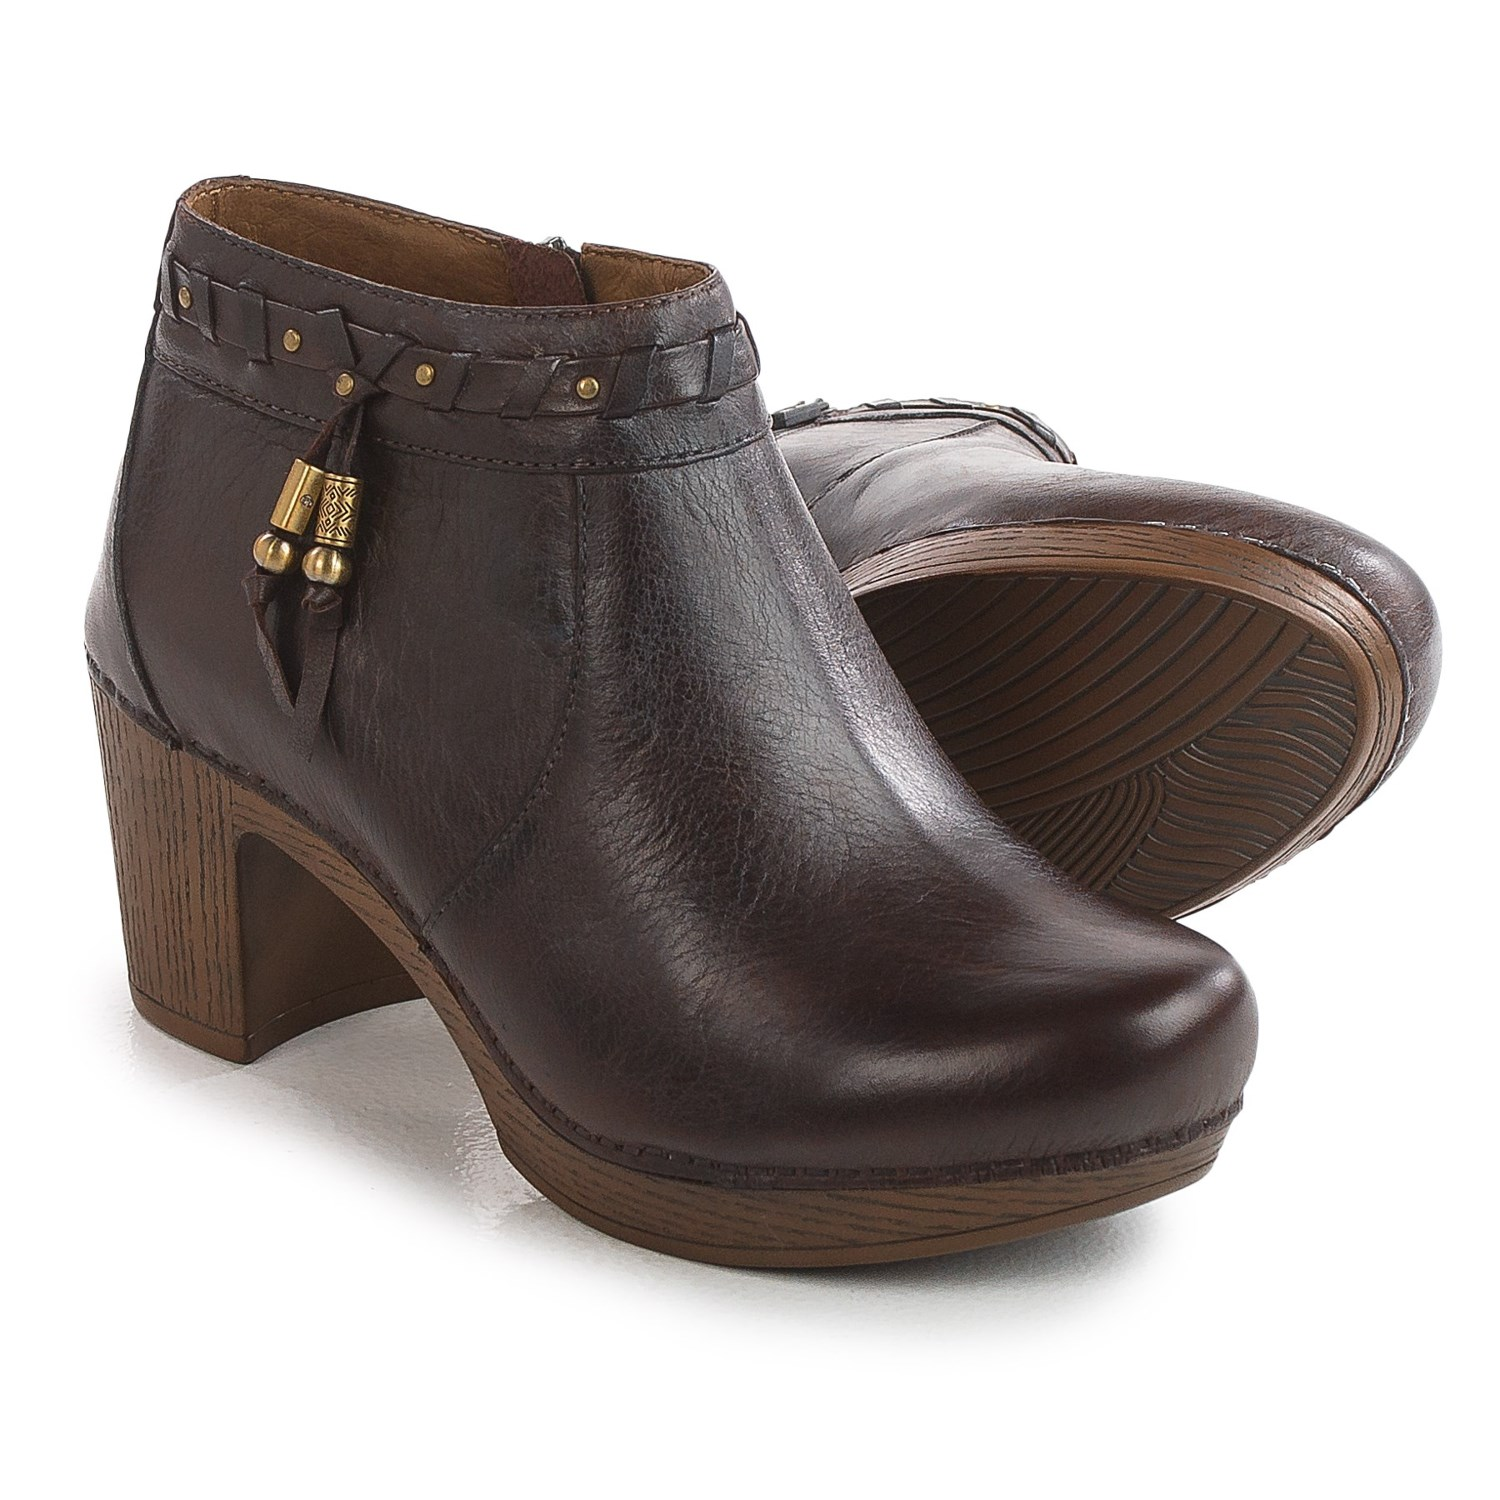 Dansko Dabney Ankle Boots For Women 194ap Save 31